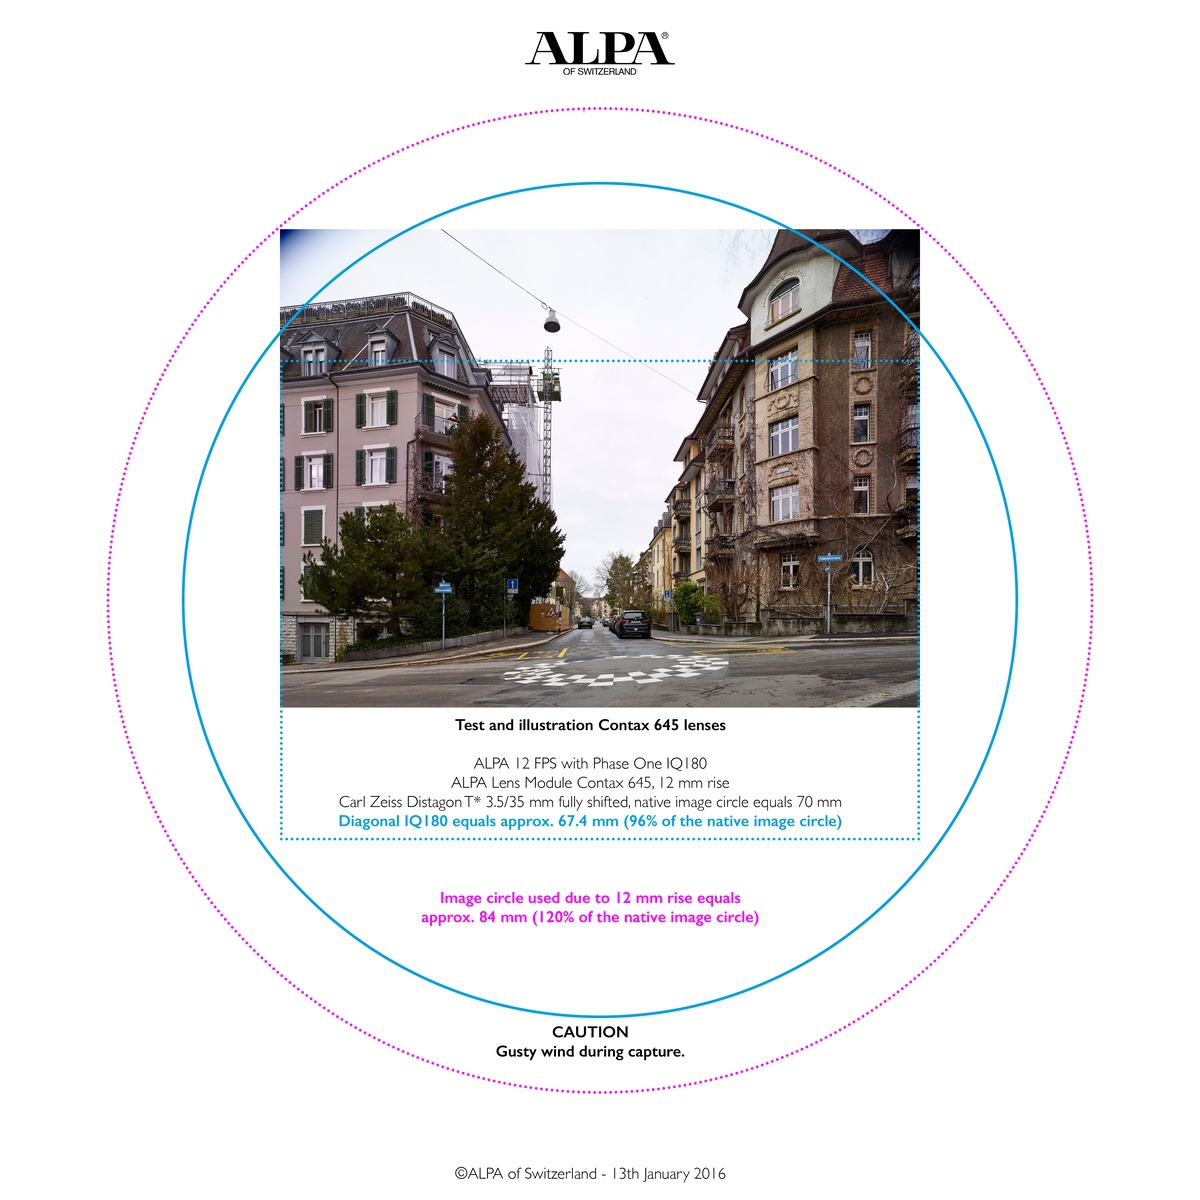 Illustration of the image circle of the Carl Zeiss Distagon T* 3.5/35 for Contax 645 on ALPA, @ALPA AndréOldani